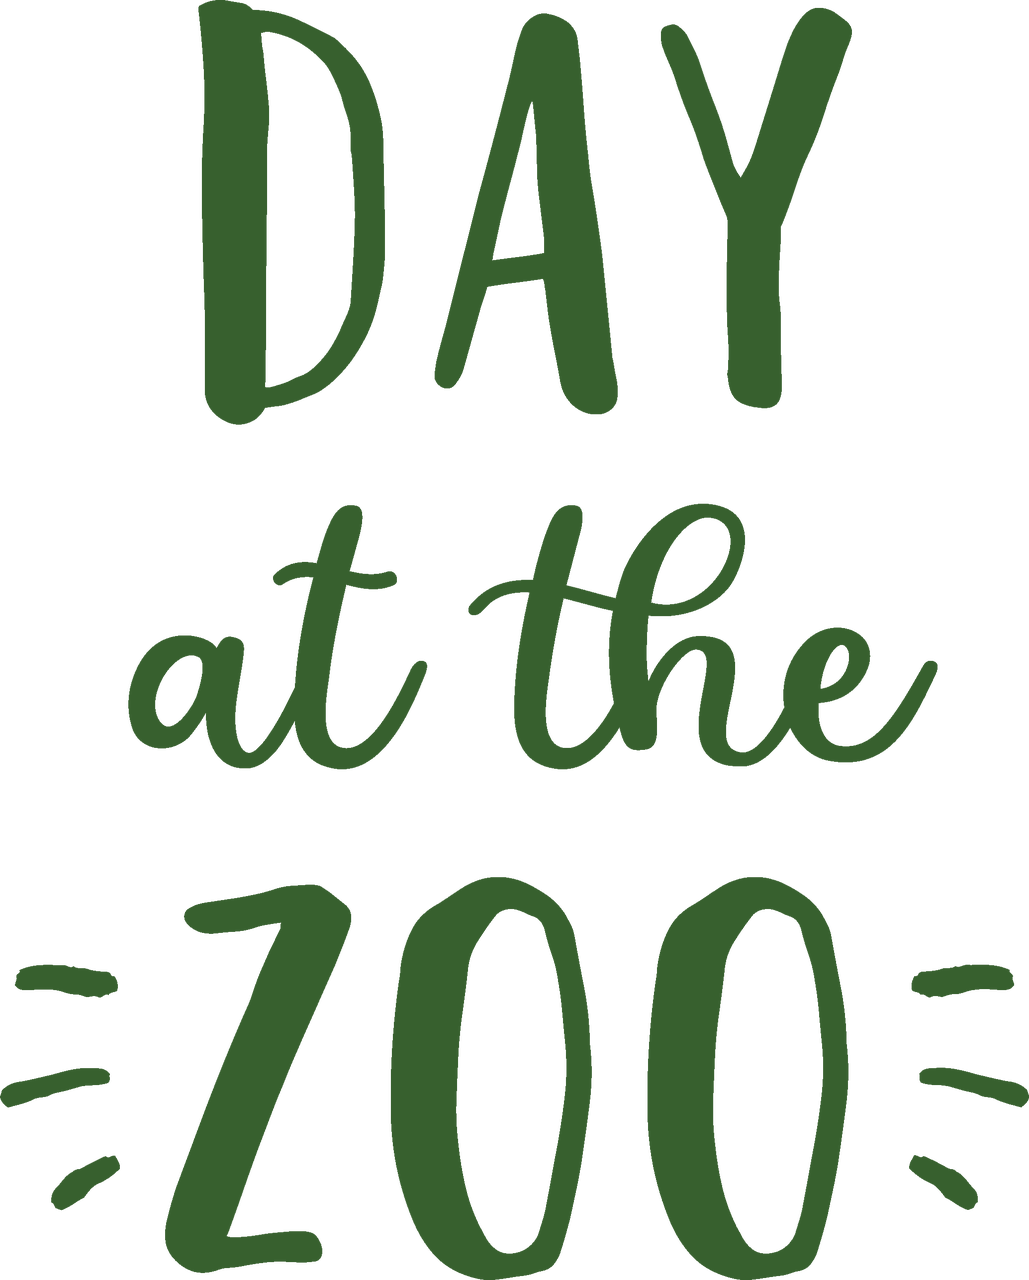 Day At The Zoo SVG Cut File